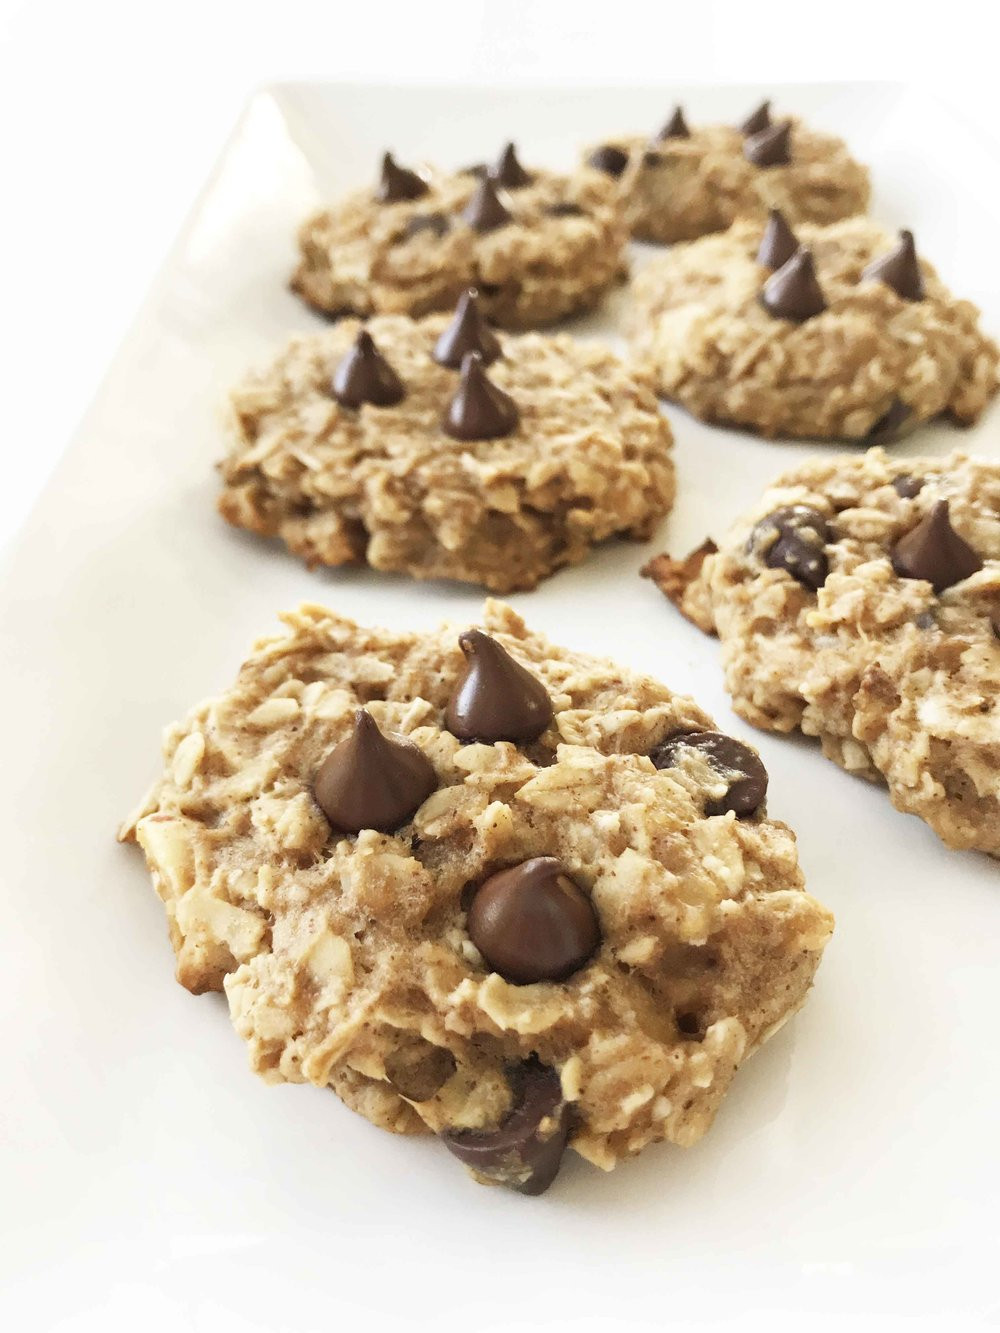 Oatmeal Peanut Butter Cookies Healthy  Healthy Peanut Butter Oatmeal Cookies — The Skinny Fork